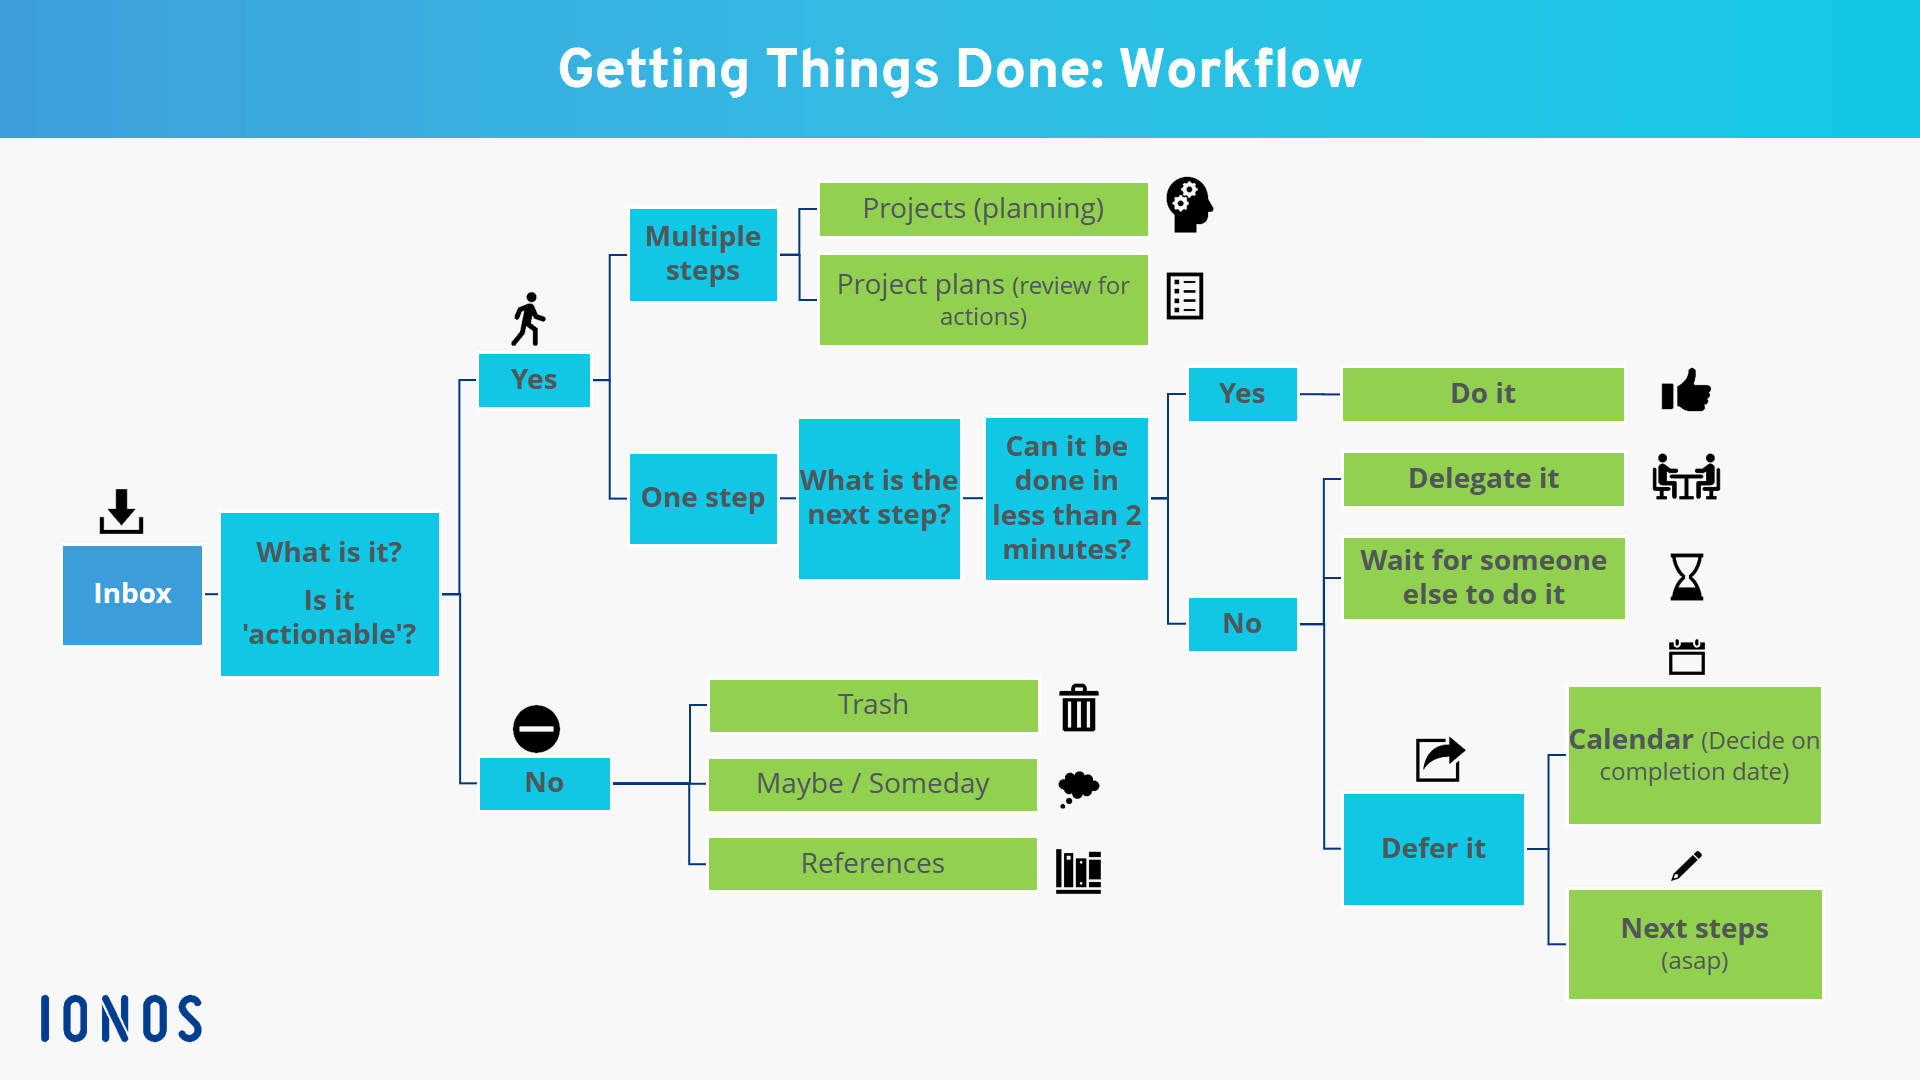 Detailed workflow of Getting Things Done